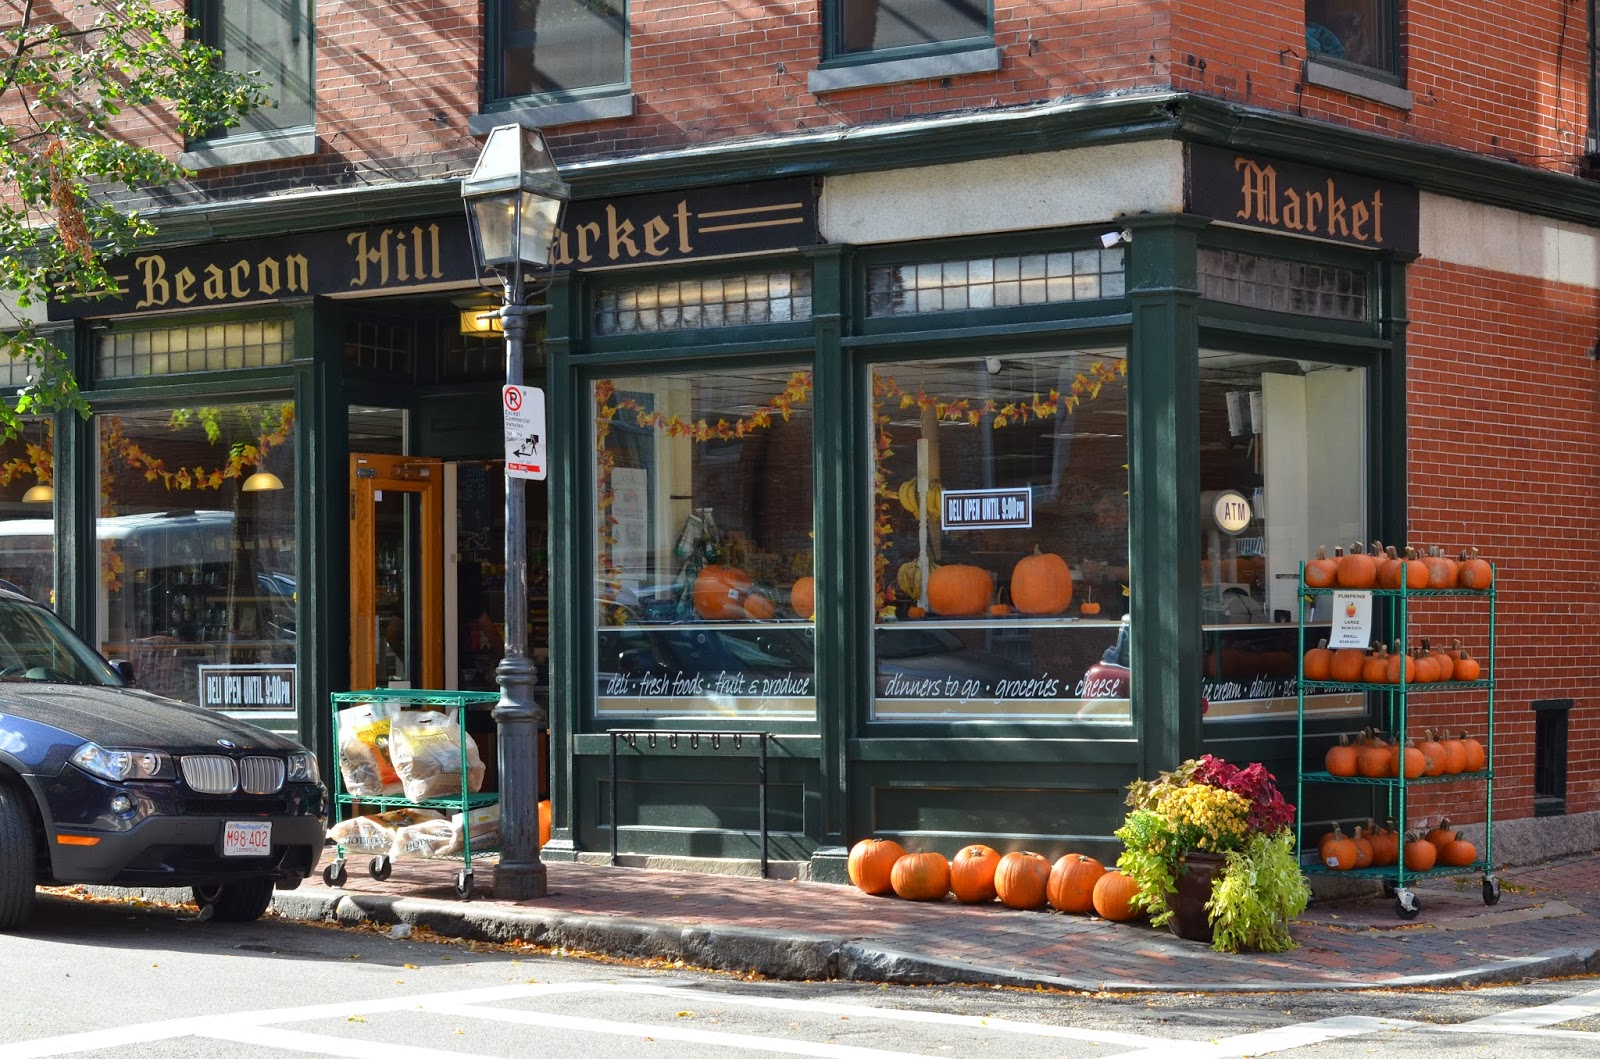 Beacon Hill, Boston, Massachusetts, pumpkins, market